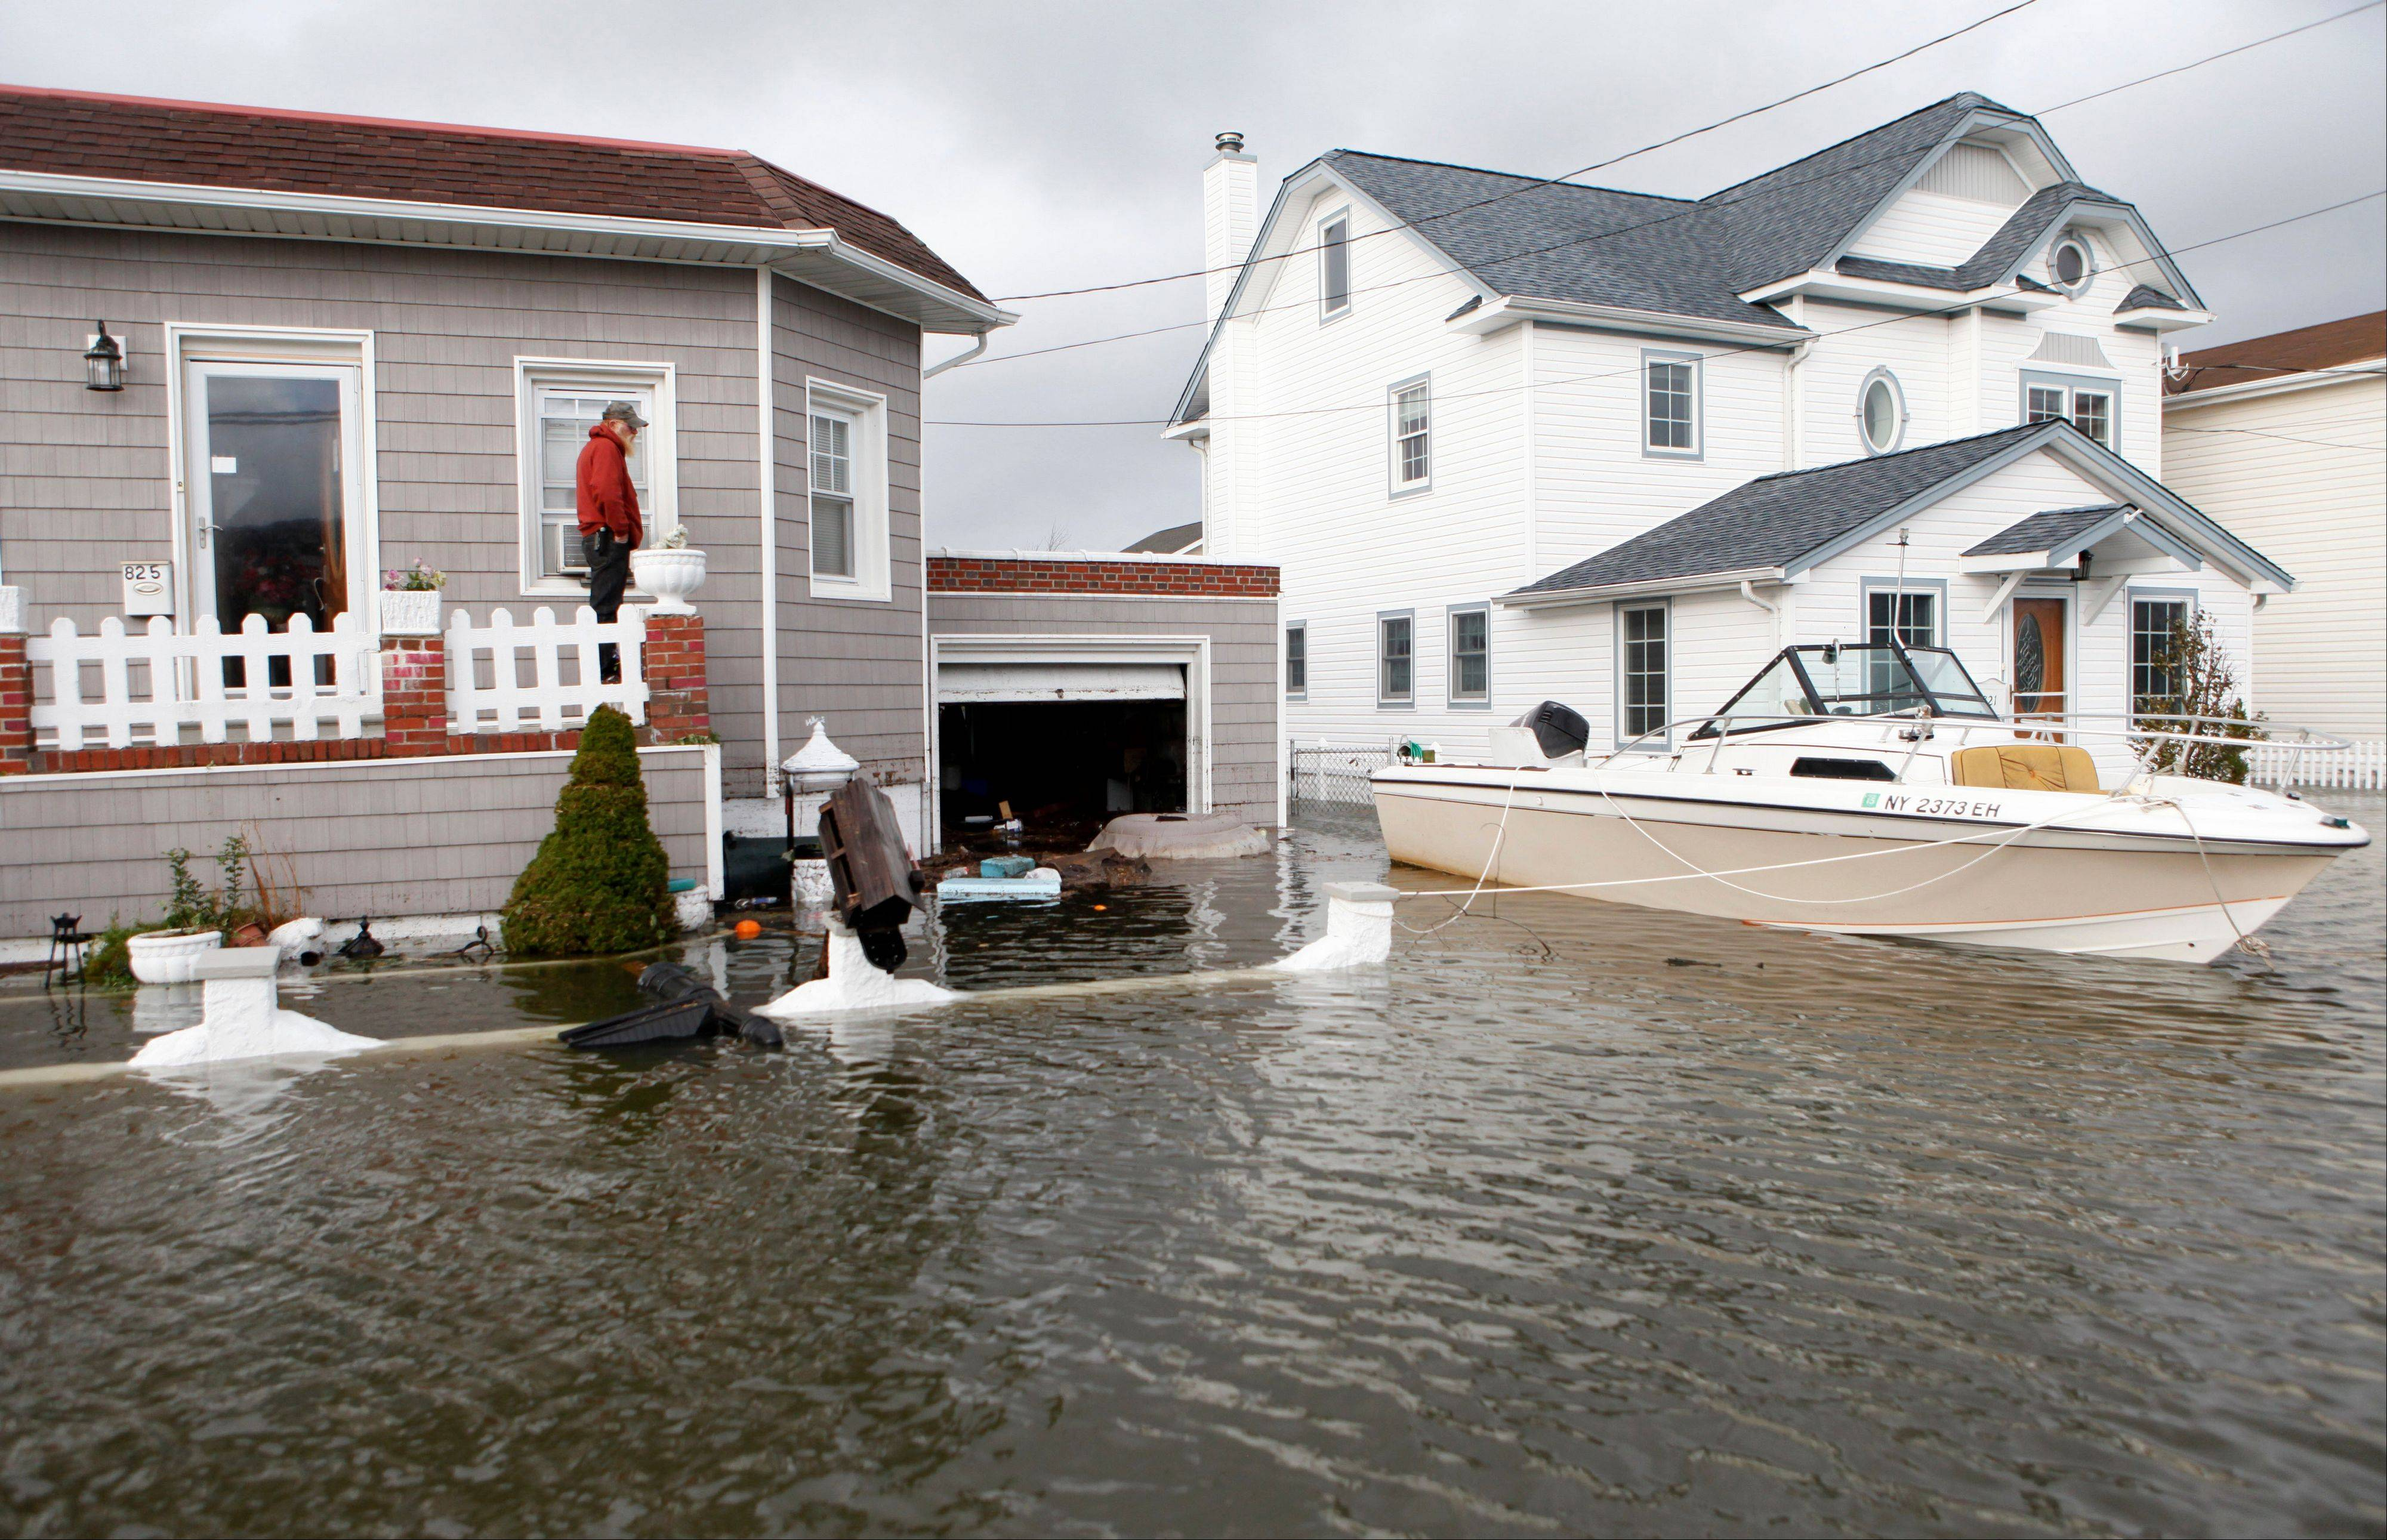 A boat floats in the driveway of a home in the aftermath of superstorm Sandy, Tuesday, Oct. 30, 2012, in Lindenhurst, N.Y.